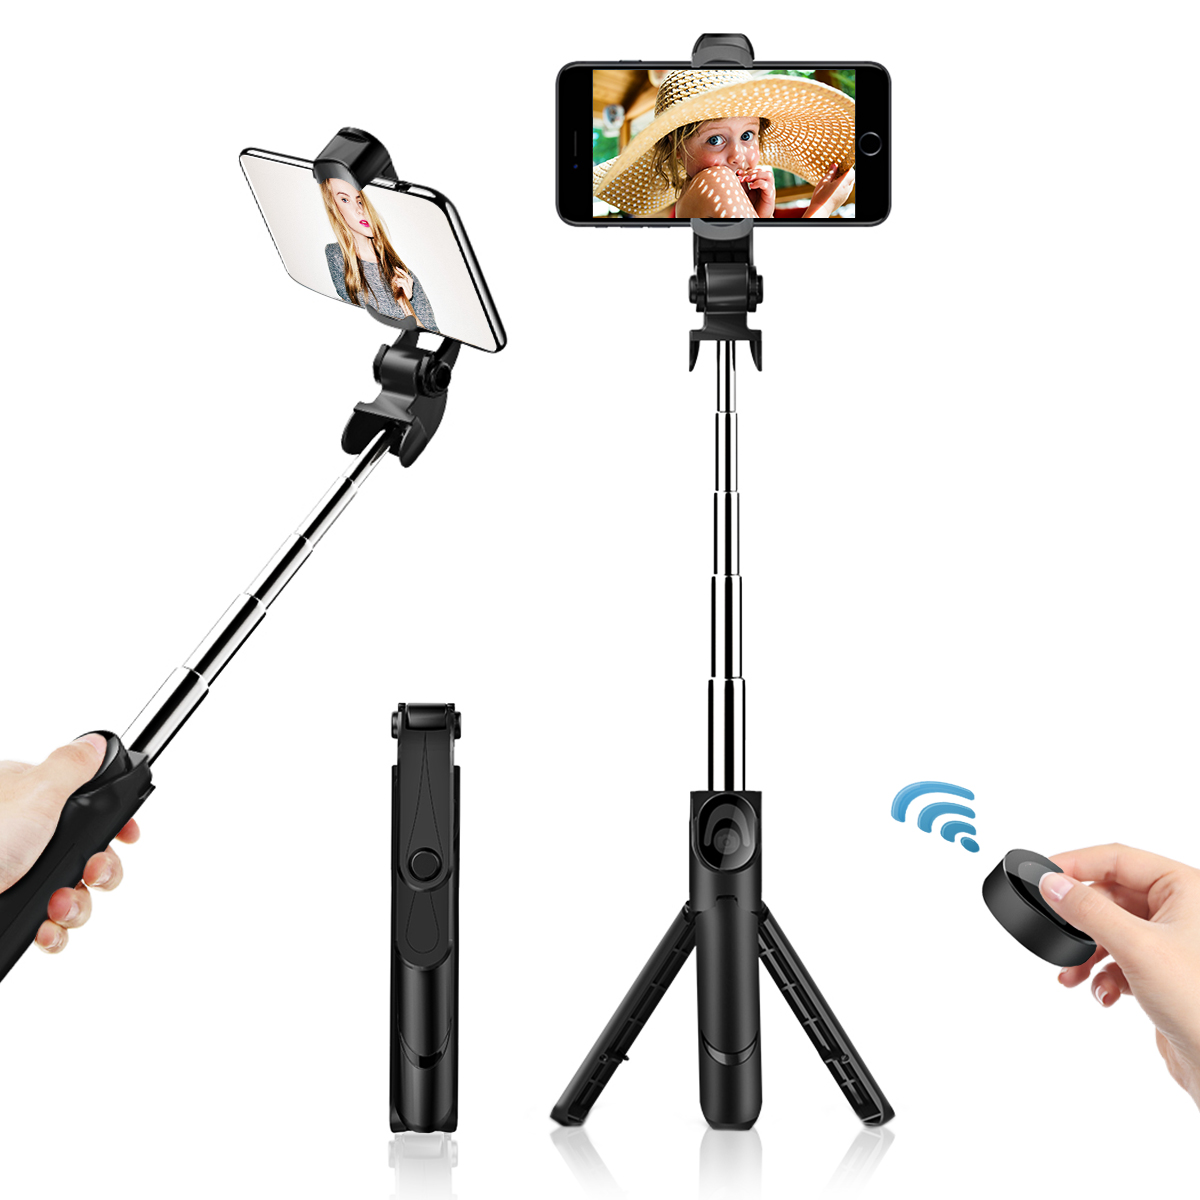 buy popular 28c97 0fbf0 Details about Monopod Selfie Stick Telescopic Bluetooth For Samsung S8,  S8+, IPhone 6s, X, XR